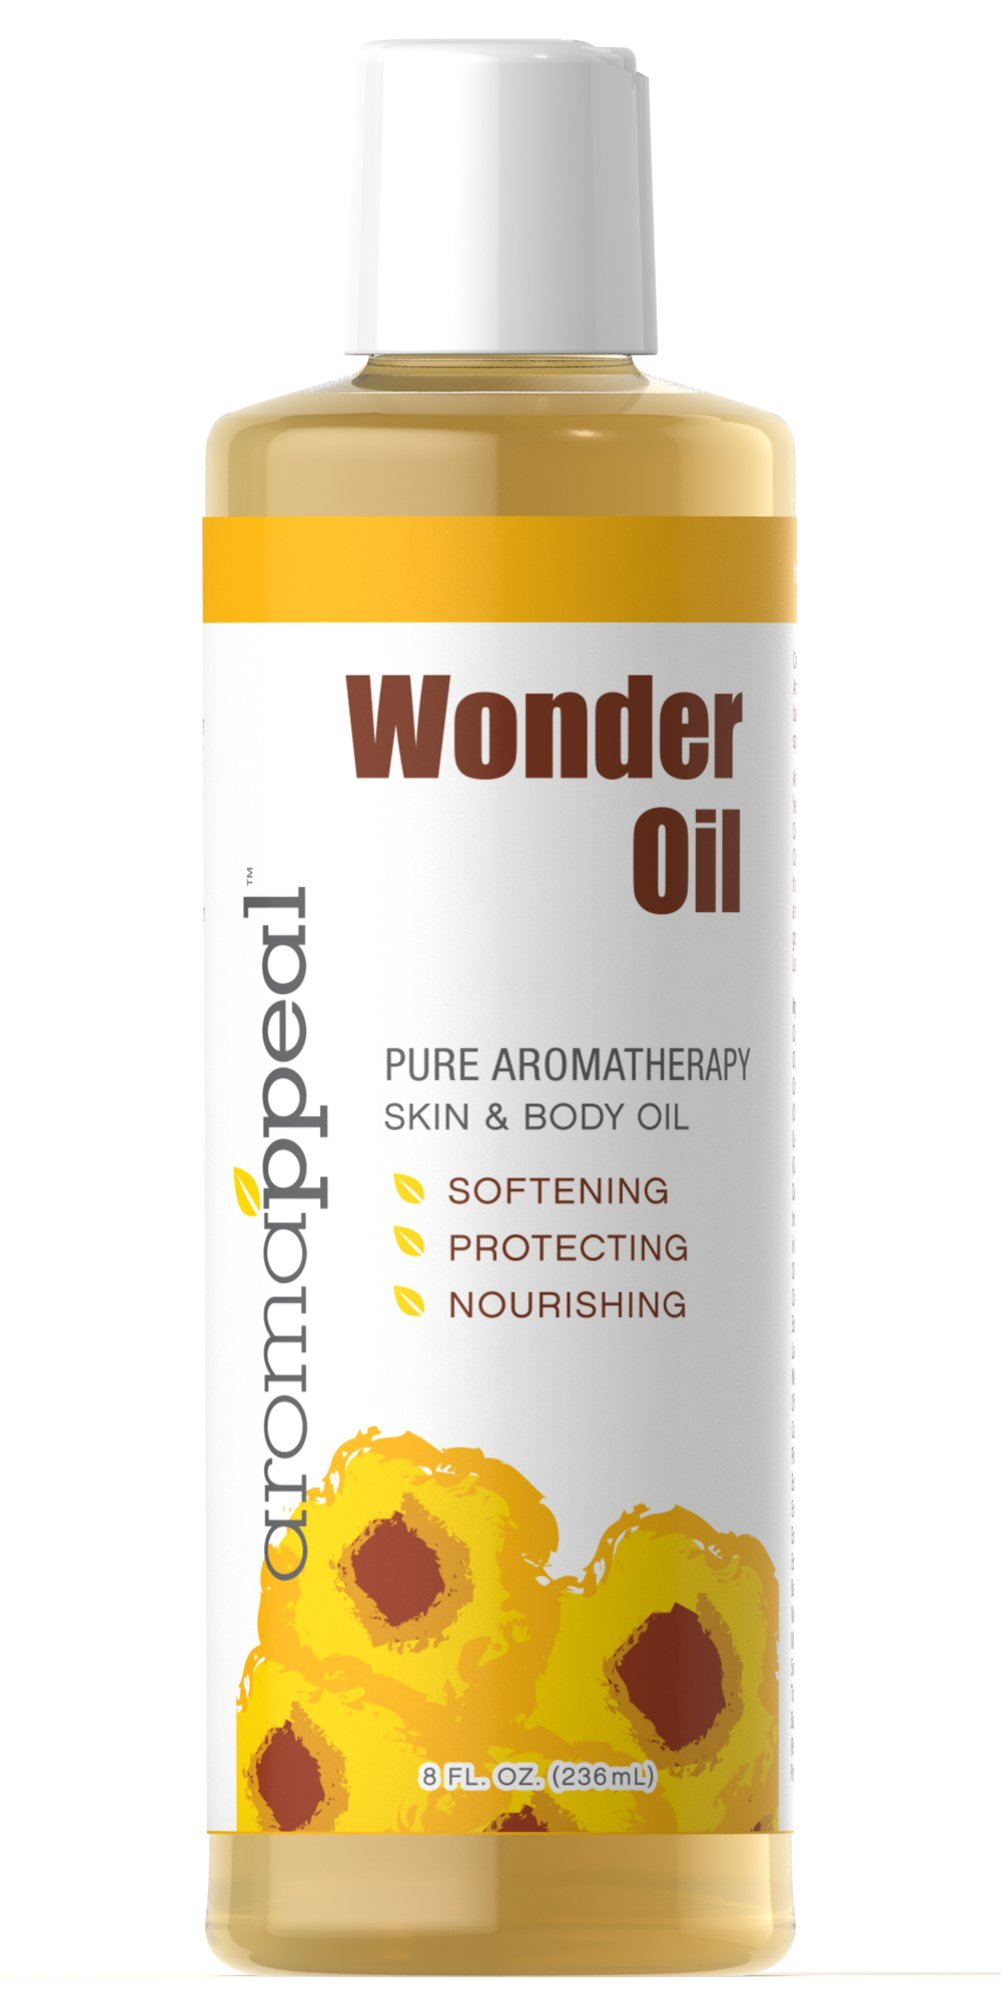 Wonder Oil <b><p>This product is a customer favorite!</b></p> A wonderful fusion of oils, herbs and fruits for the body</p> <p>Includes a medley of Olive, Sunflower Seed, Wheat Germ, Sweet Almond, Sesame and Jojoba Oils</p>  <p>Enriched with the lively citrus scents of Grapefruit, Lemon and Orange</p> <p>This versatile formula helps replenish your hair, skin and nails</p><p>Use this Aromappeal product as a hot oil treatment